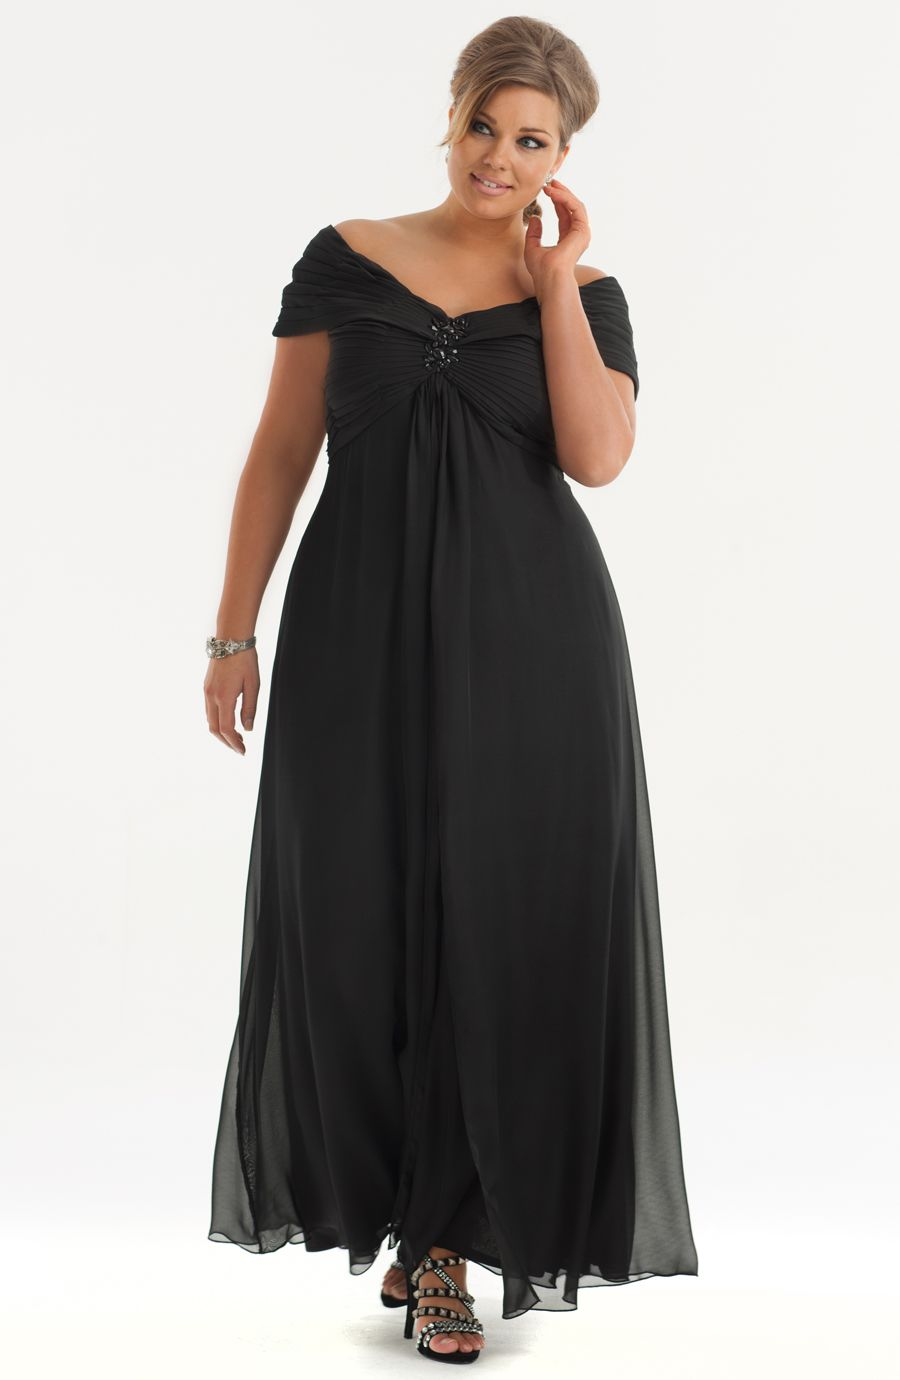 plus+size+evening+dresses  4624ebfbd7f5